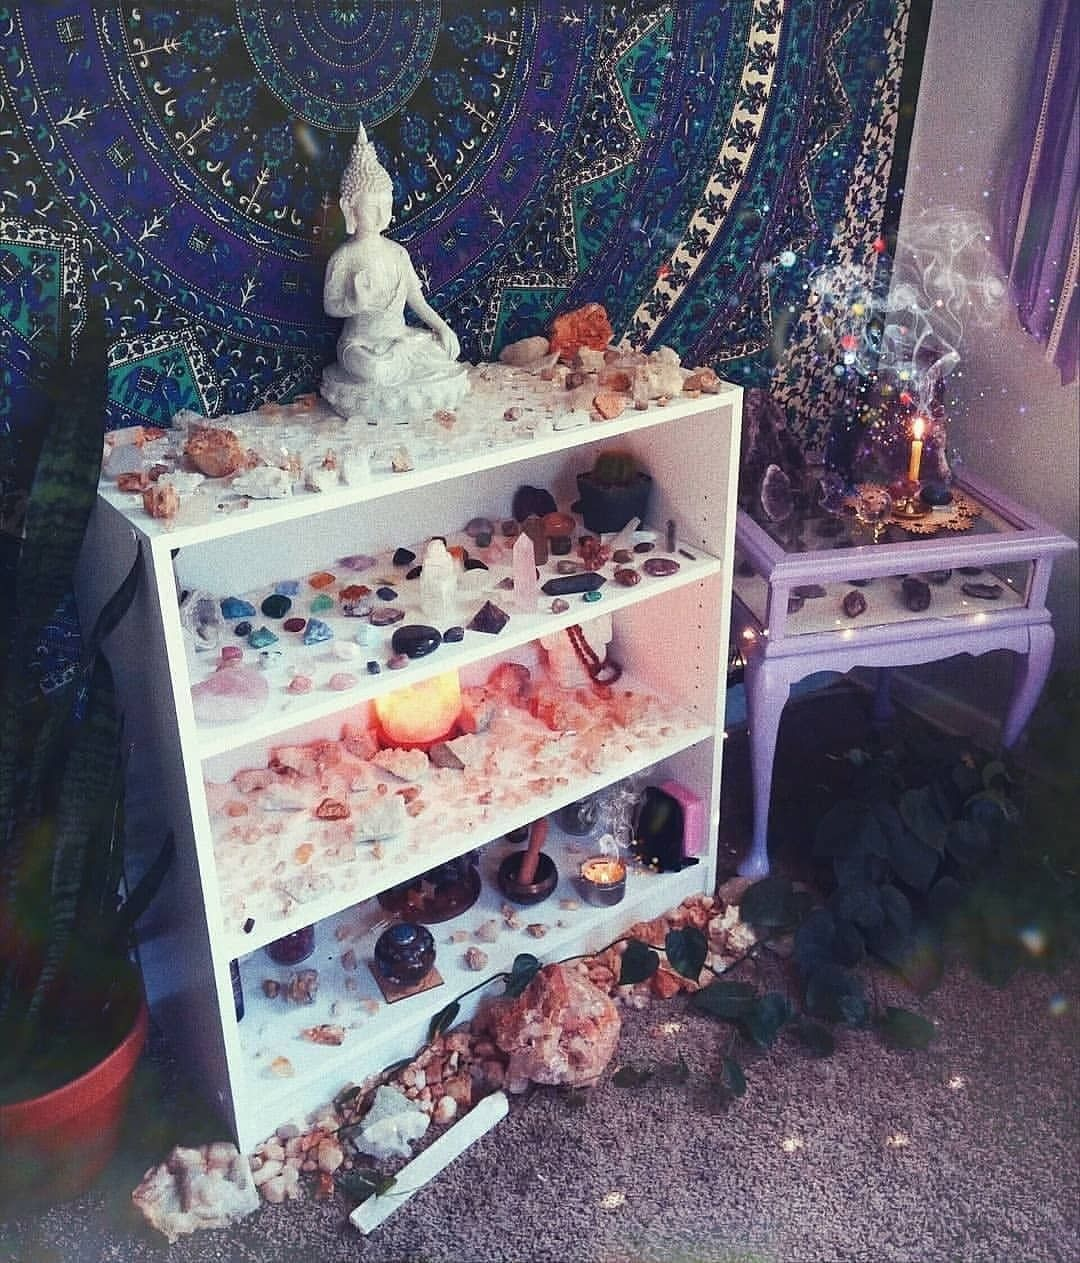 """🌟🌜 𝑰𝒏𝒔𝒕𝒂 𝘾𝙧𝙮𝙨𝙩𝙖𝙡𝙨🌛🌟 on Instagram: """"How beautiful is this altar setup?? 😍🔮 Tag someone who'd love it!! Follow @insta.crystals .  credit: @mothercelestial"""""""